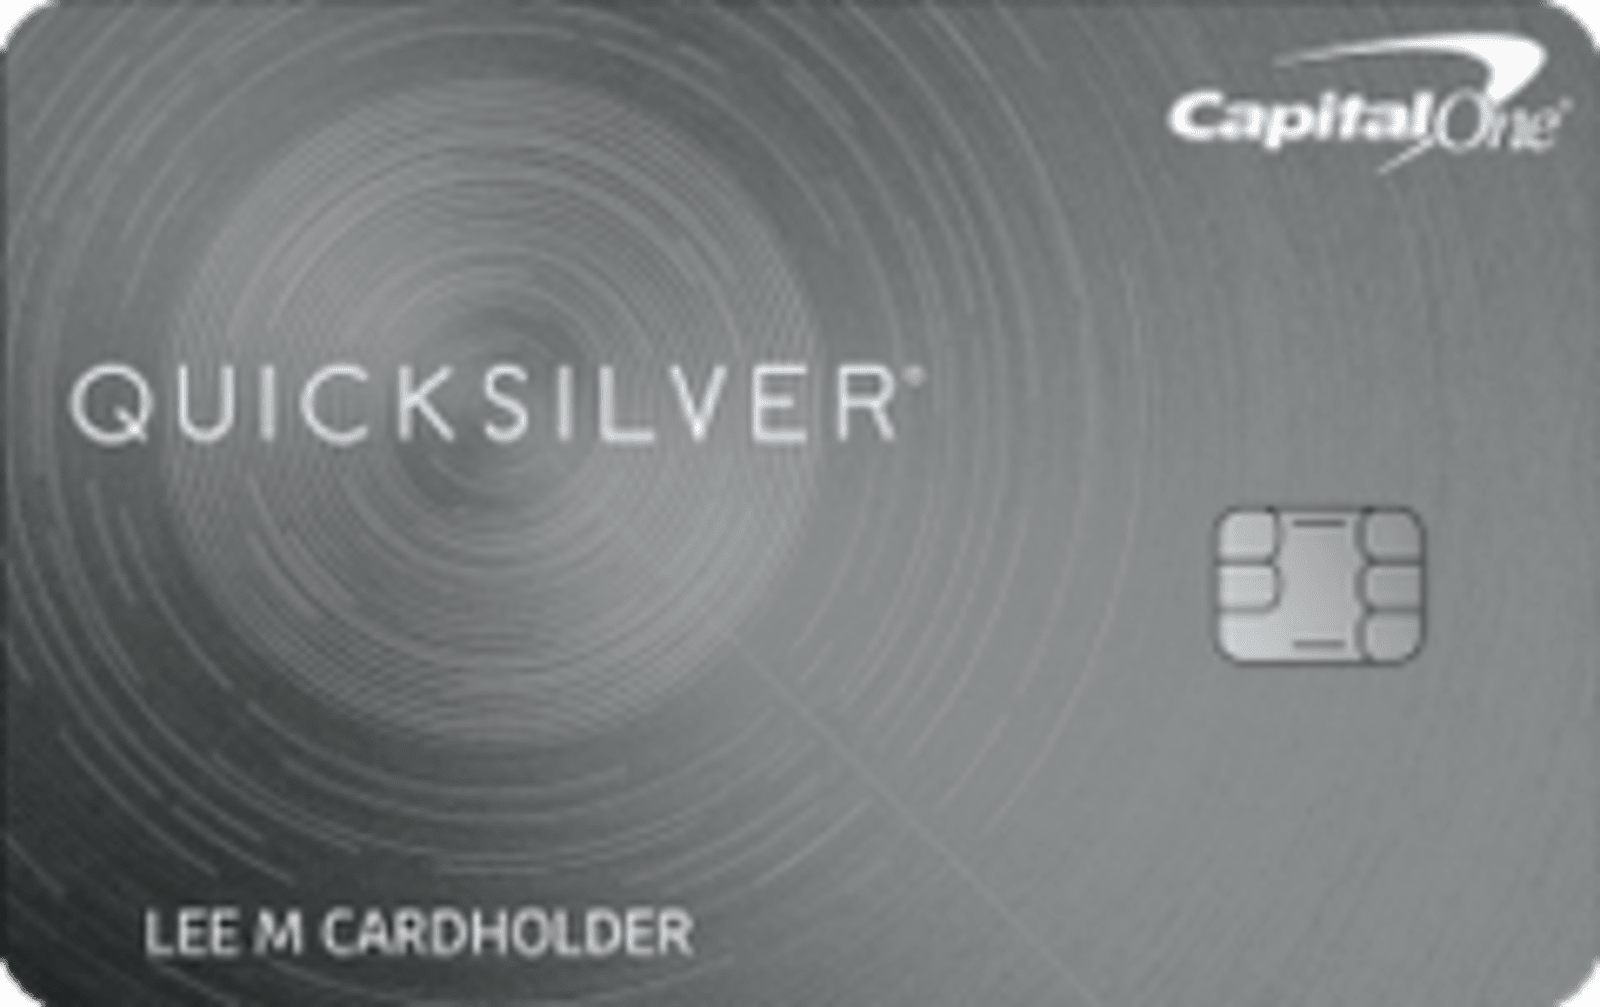 Best Capital One Credit Cards of 2019 - ValuePenguin